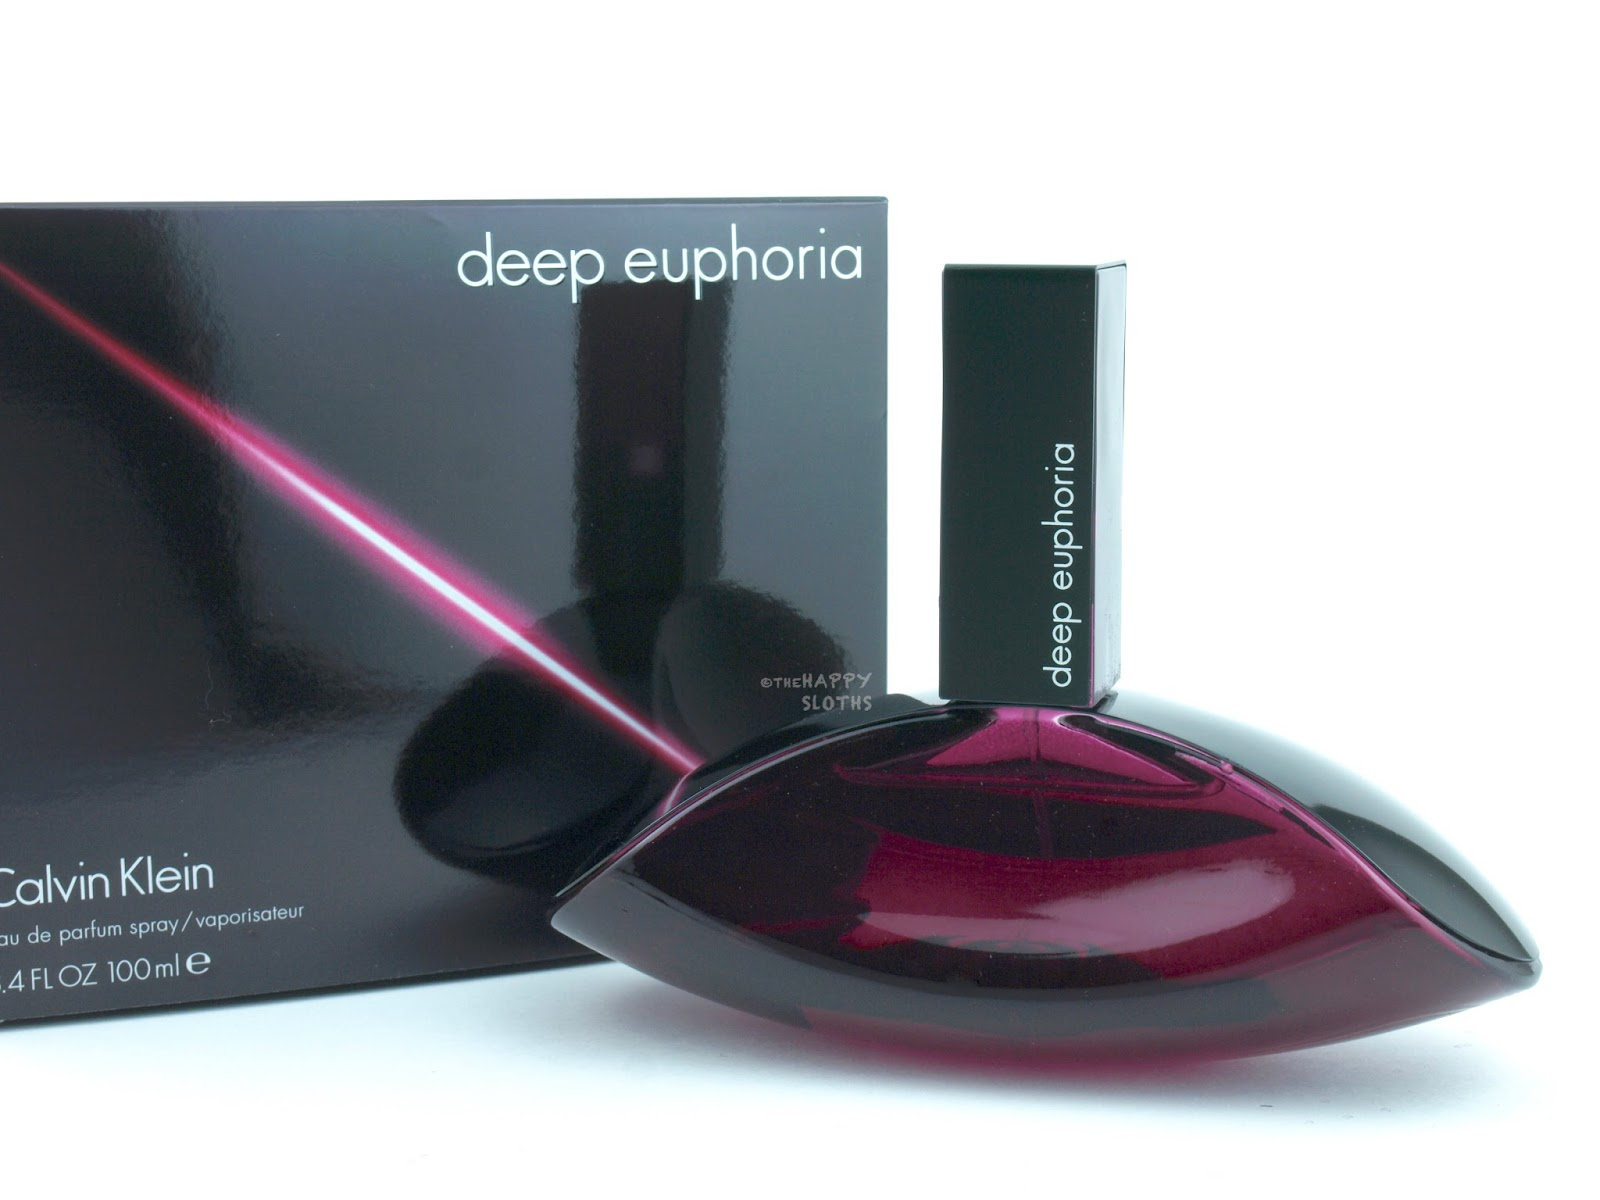 Calvin Klein Deep Euphoria Review